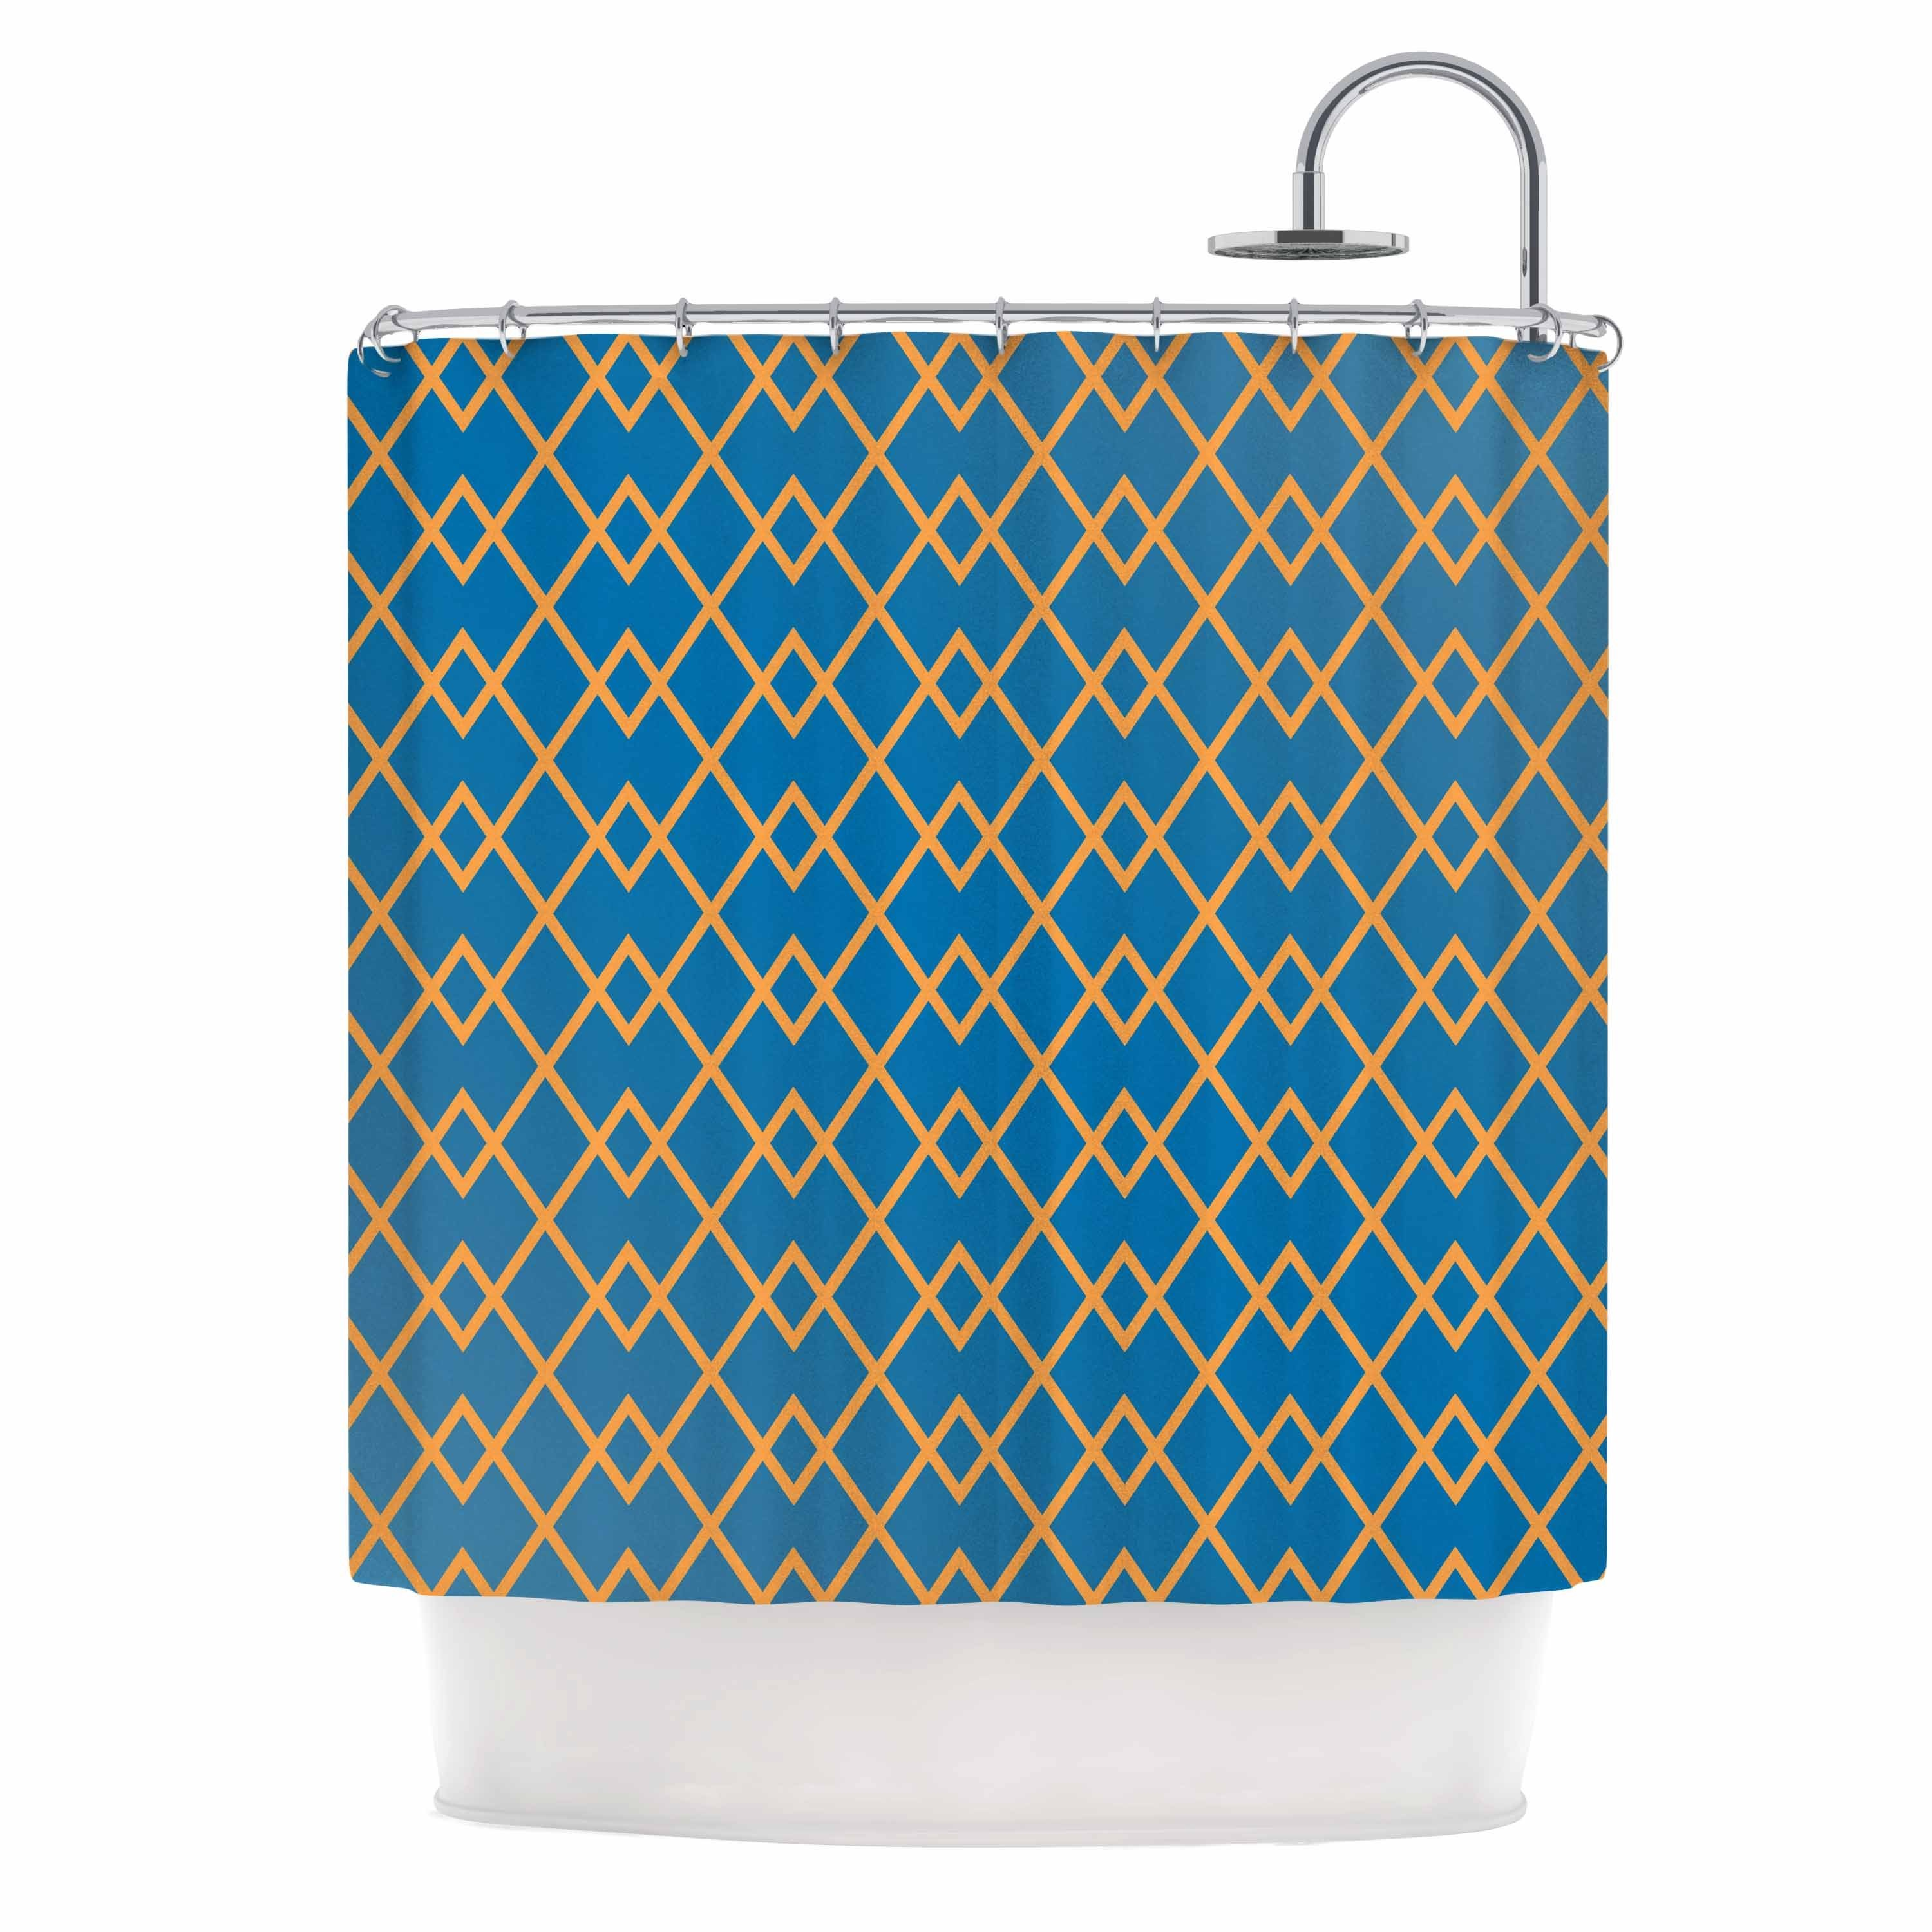 Shop KESS InHouse Matt Eklund Down By The Beach Blue Gold Shower Curtain 69x70